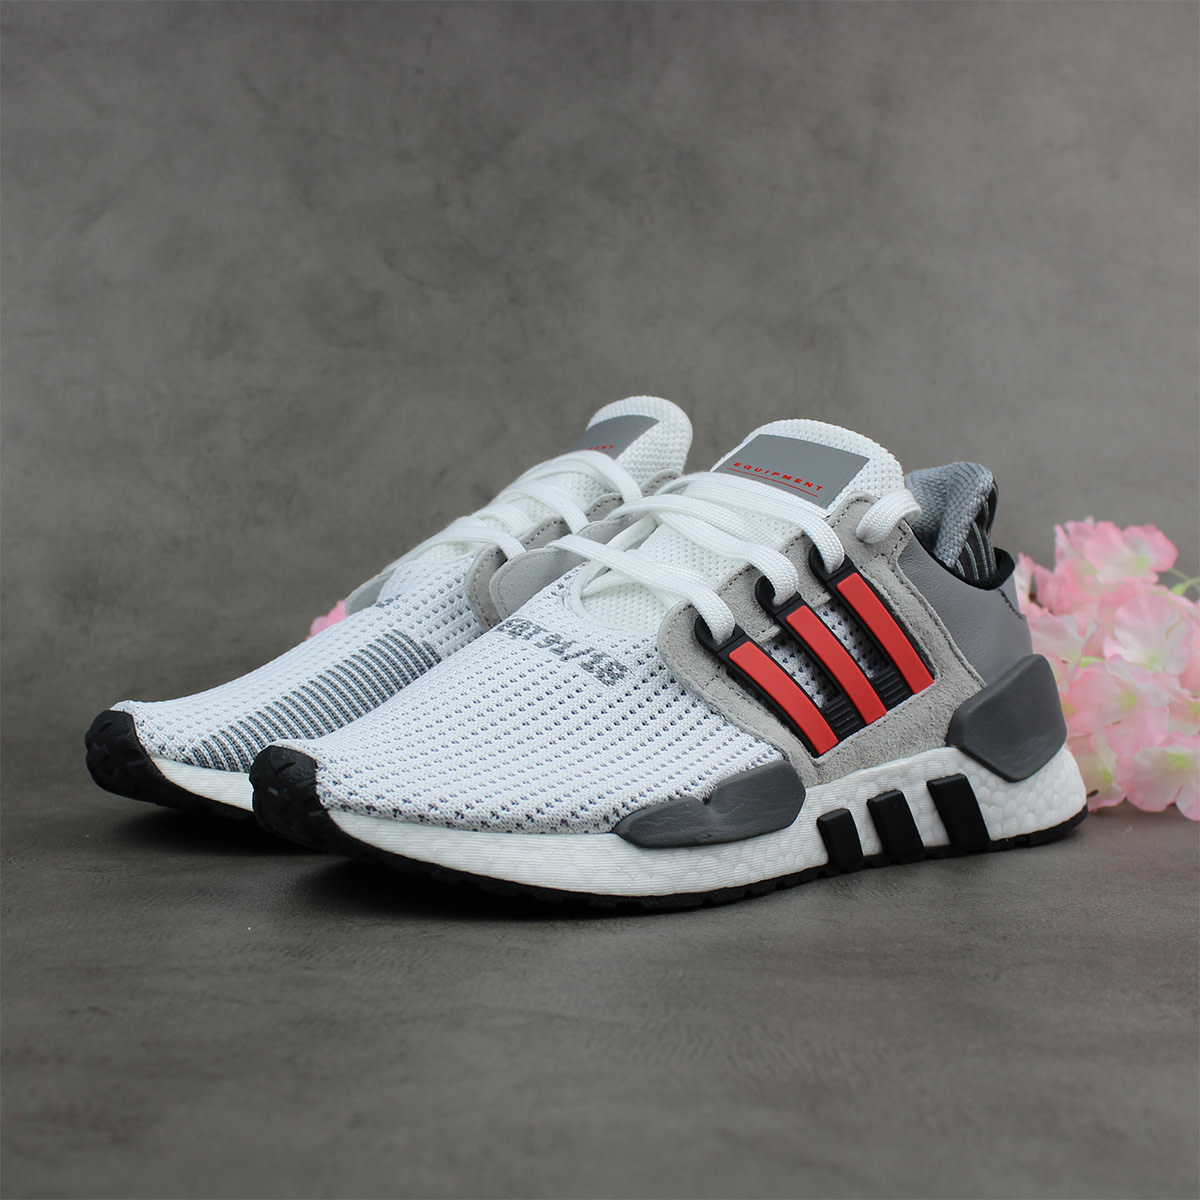 Adidas EQT Support 91/18 (White/Red) B37521